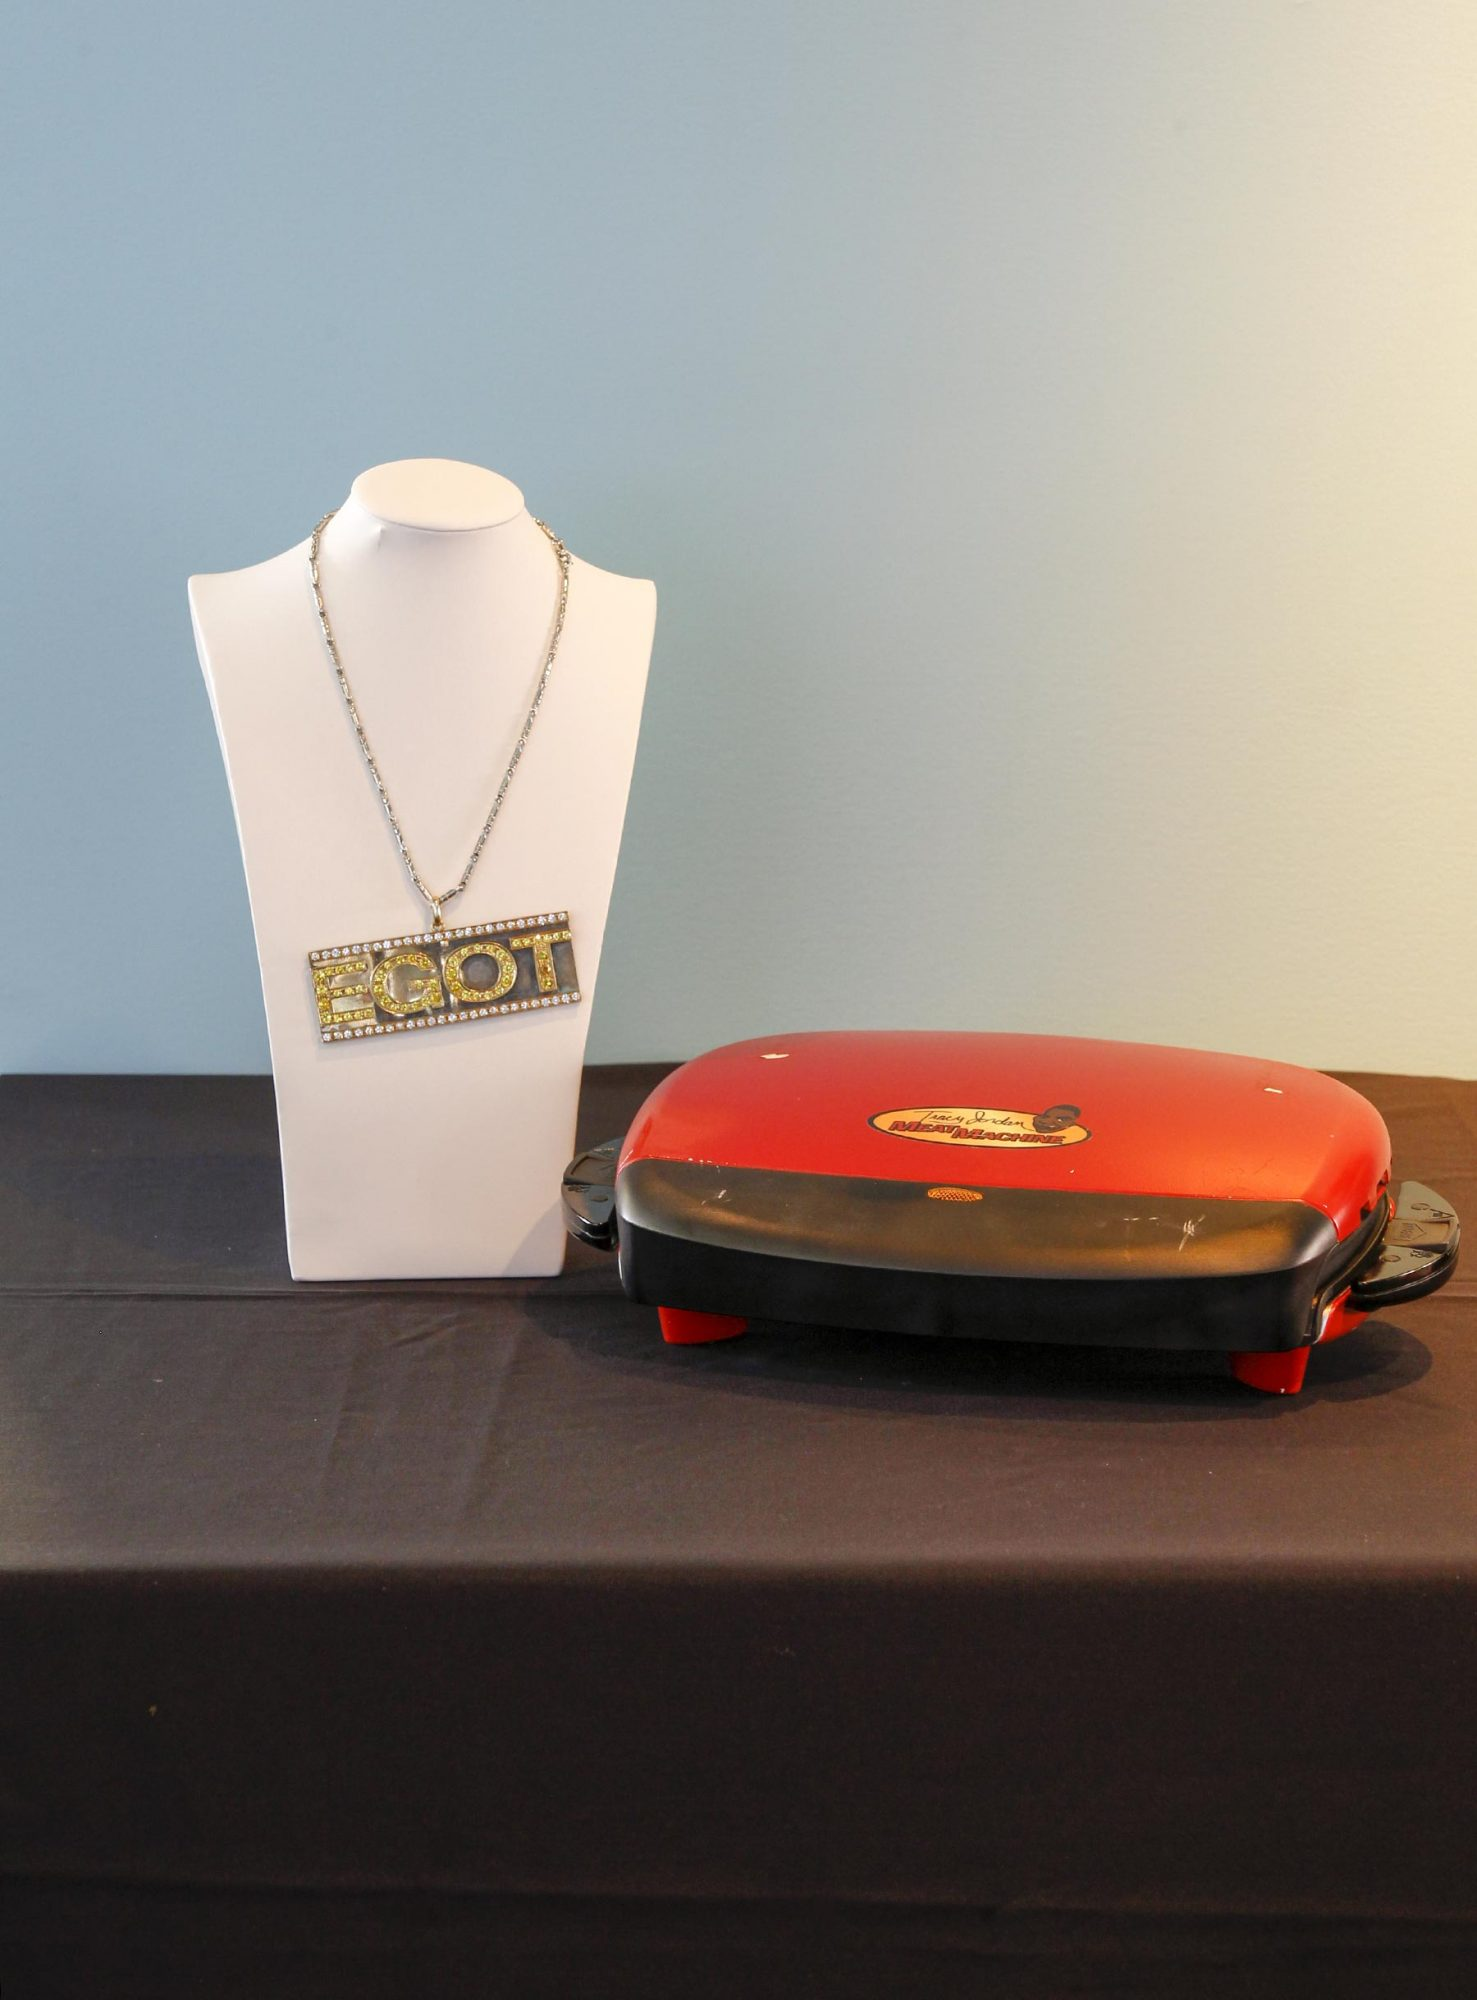 Tracy Jordan's (Tracy Morgan) EGOT necklace and The Tracy Jordan Meat Machine from 30 Rock